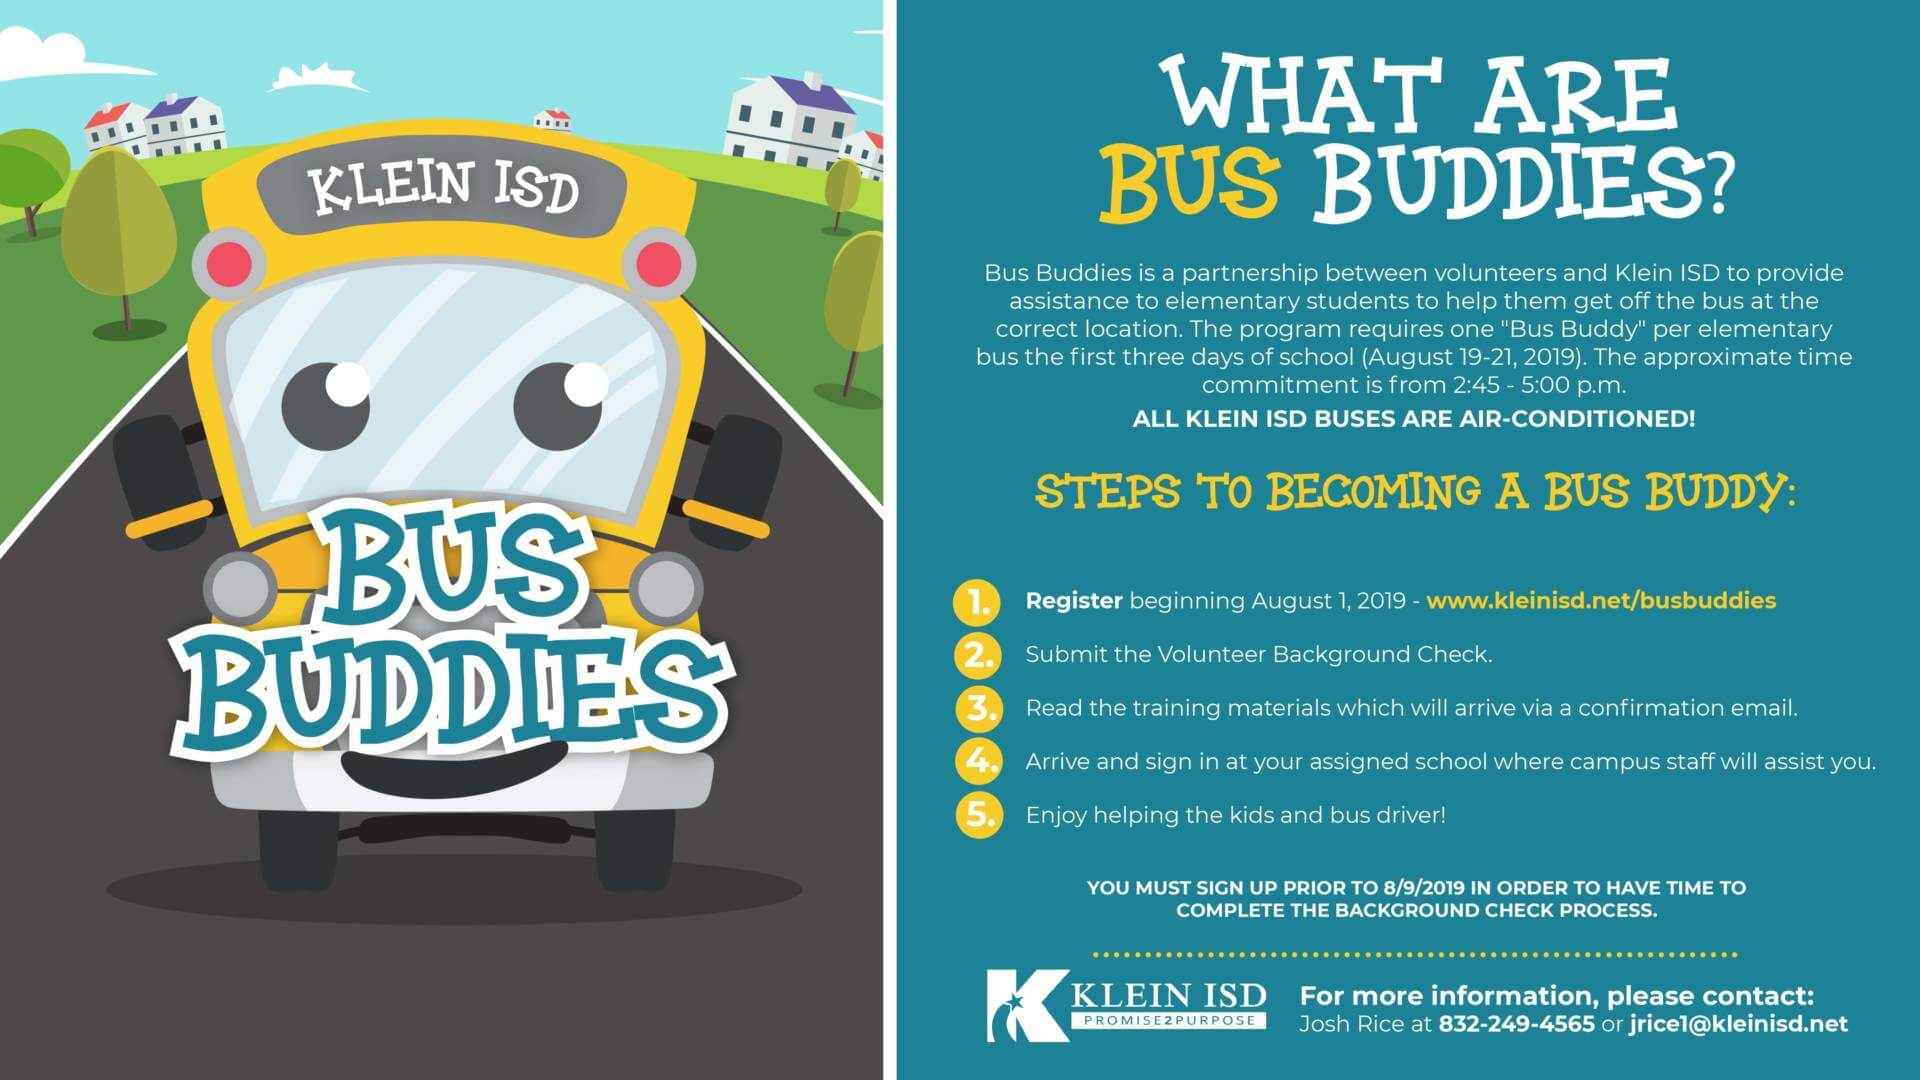 Support Your School by Volunteering to be a Klein ISD Bus Buddy